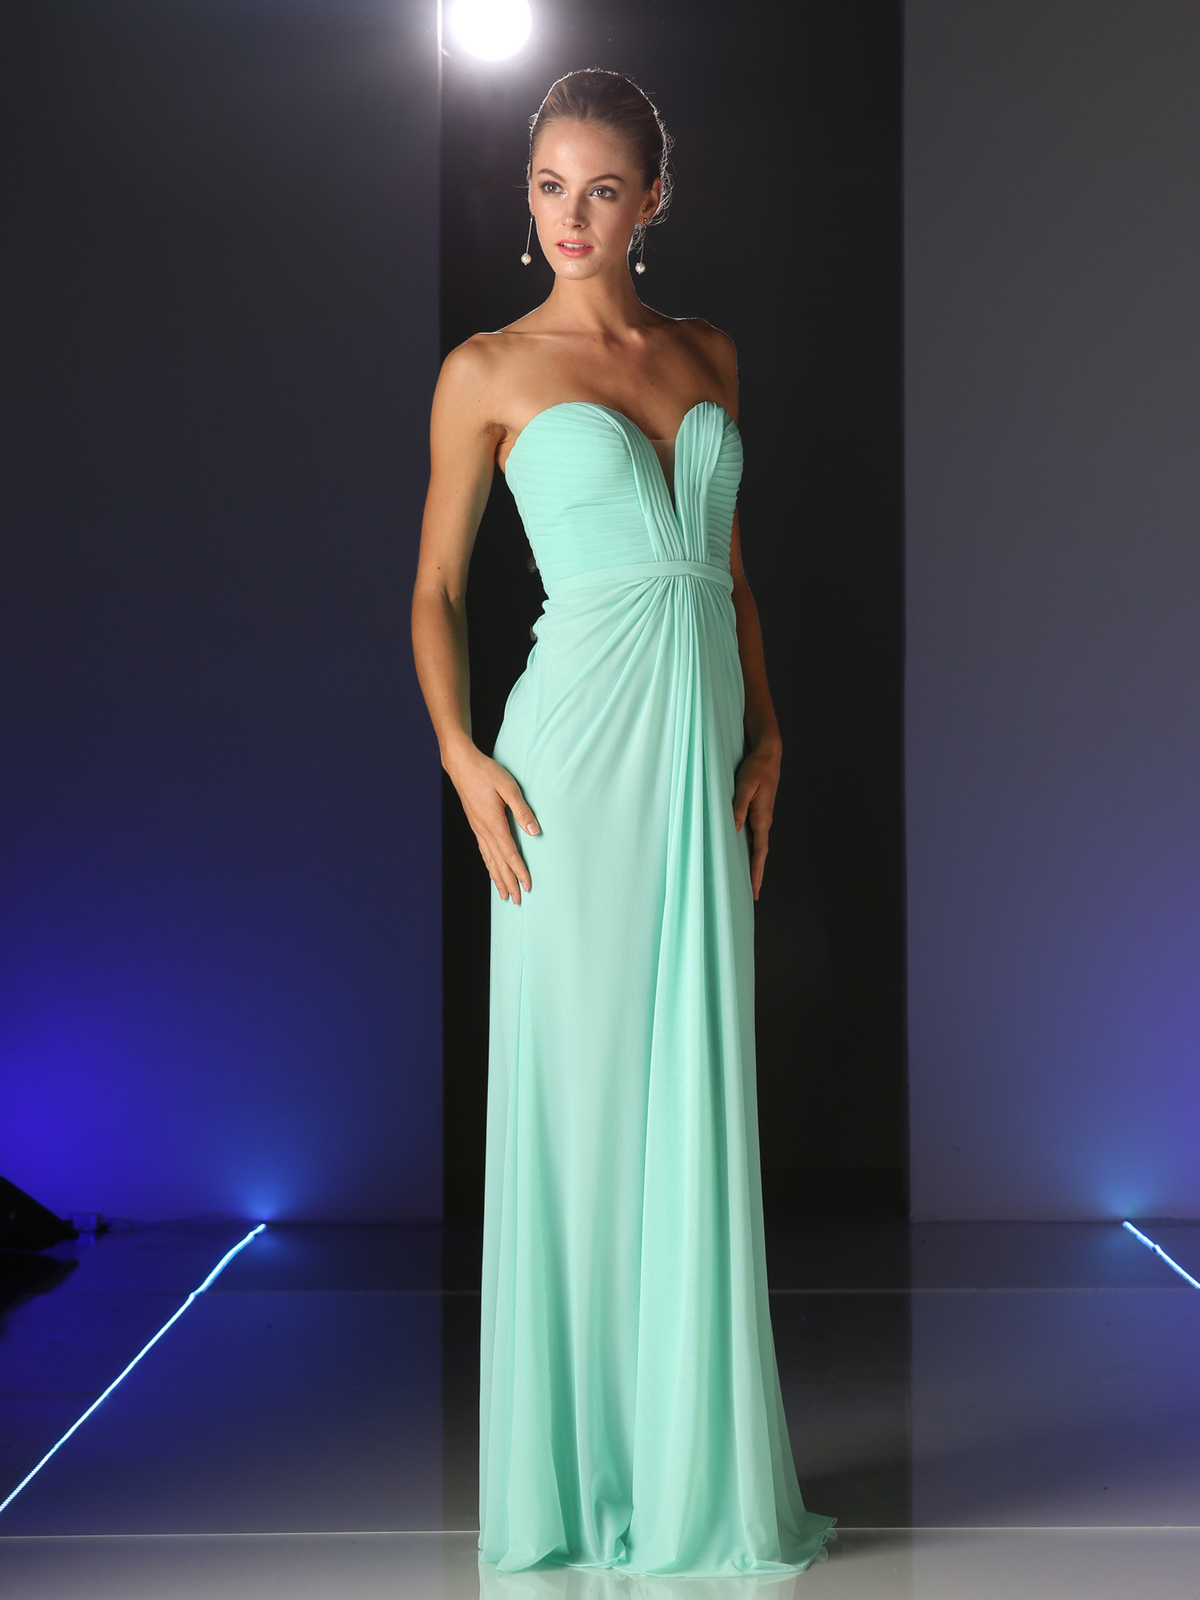 Strapless sweetheart bridesmaid dress sung boutique la cd 601 strapless sweetheart bridesmaid dress mint front view medium ombrellifo Choice Image